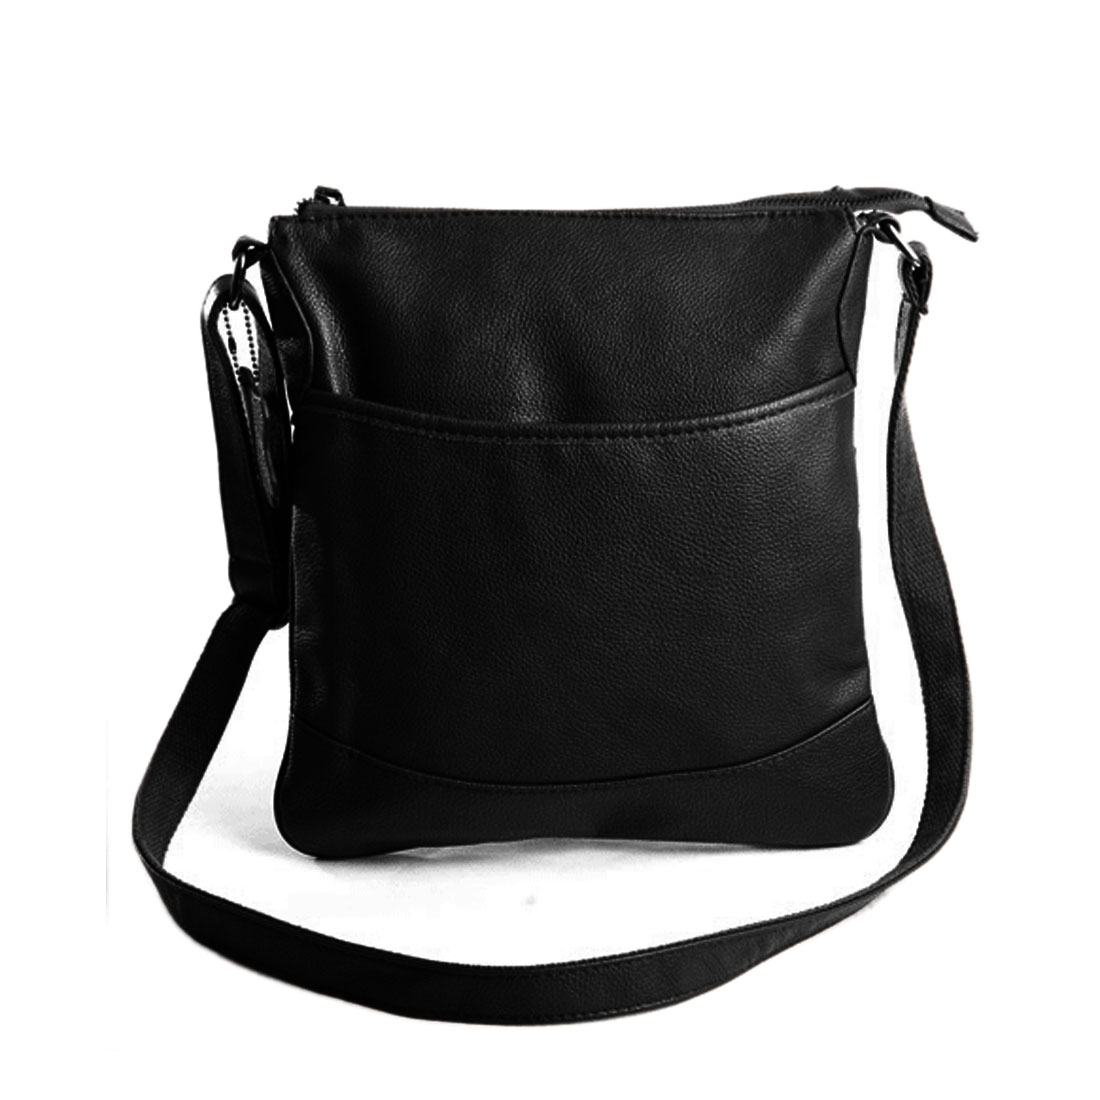 Mens Black Adjustable Strap Zippered Pockets Leather Look Shoulder Bag